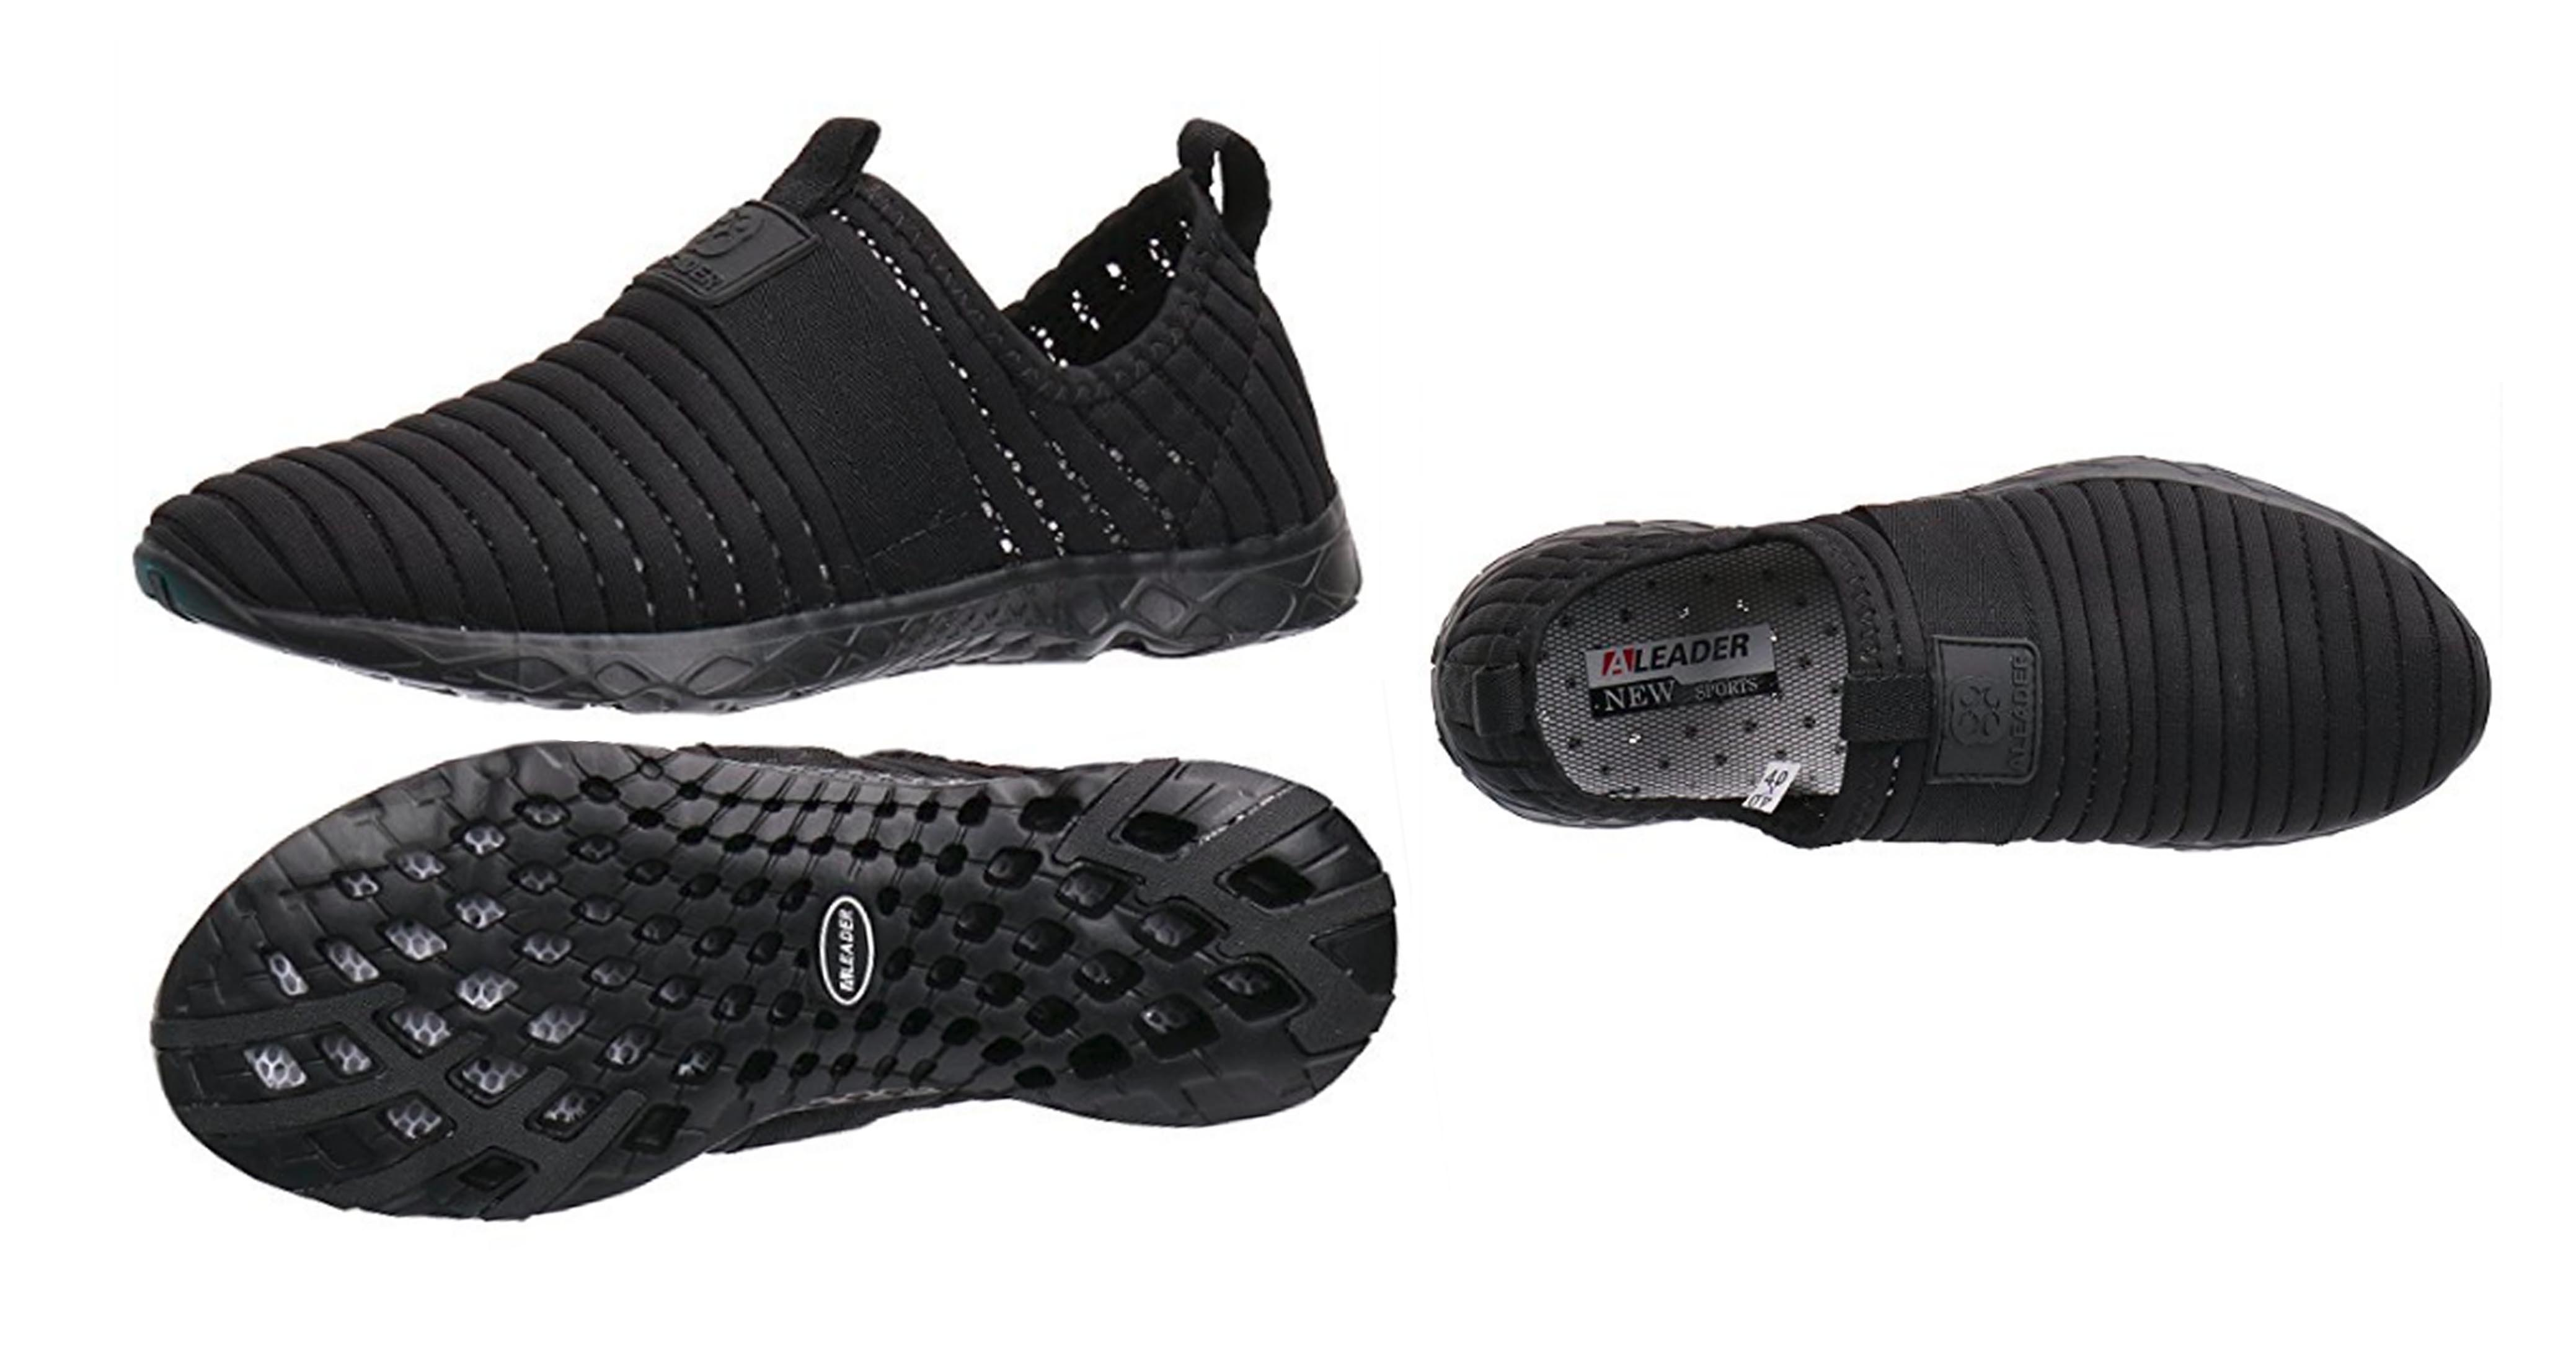 bcd9980b8069 Water Shoes Reviews  Top 8 Water Shoes - February 2019